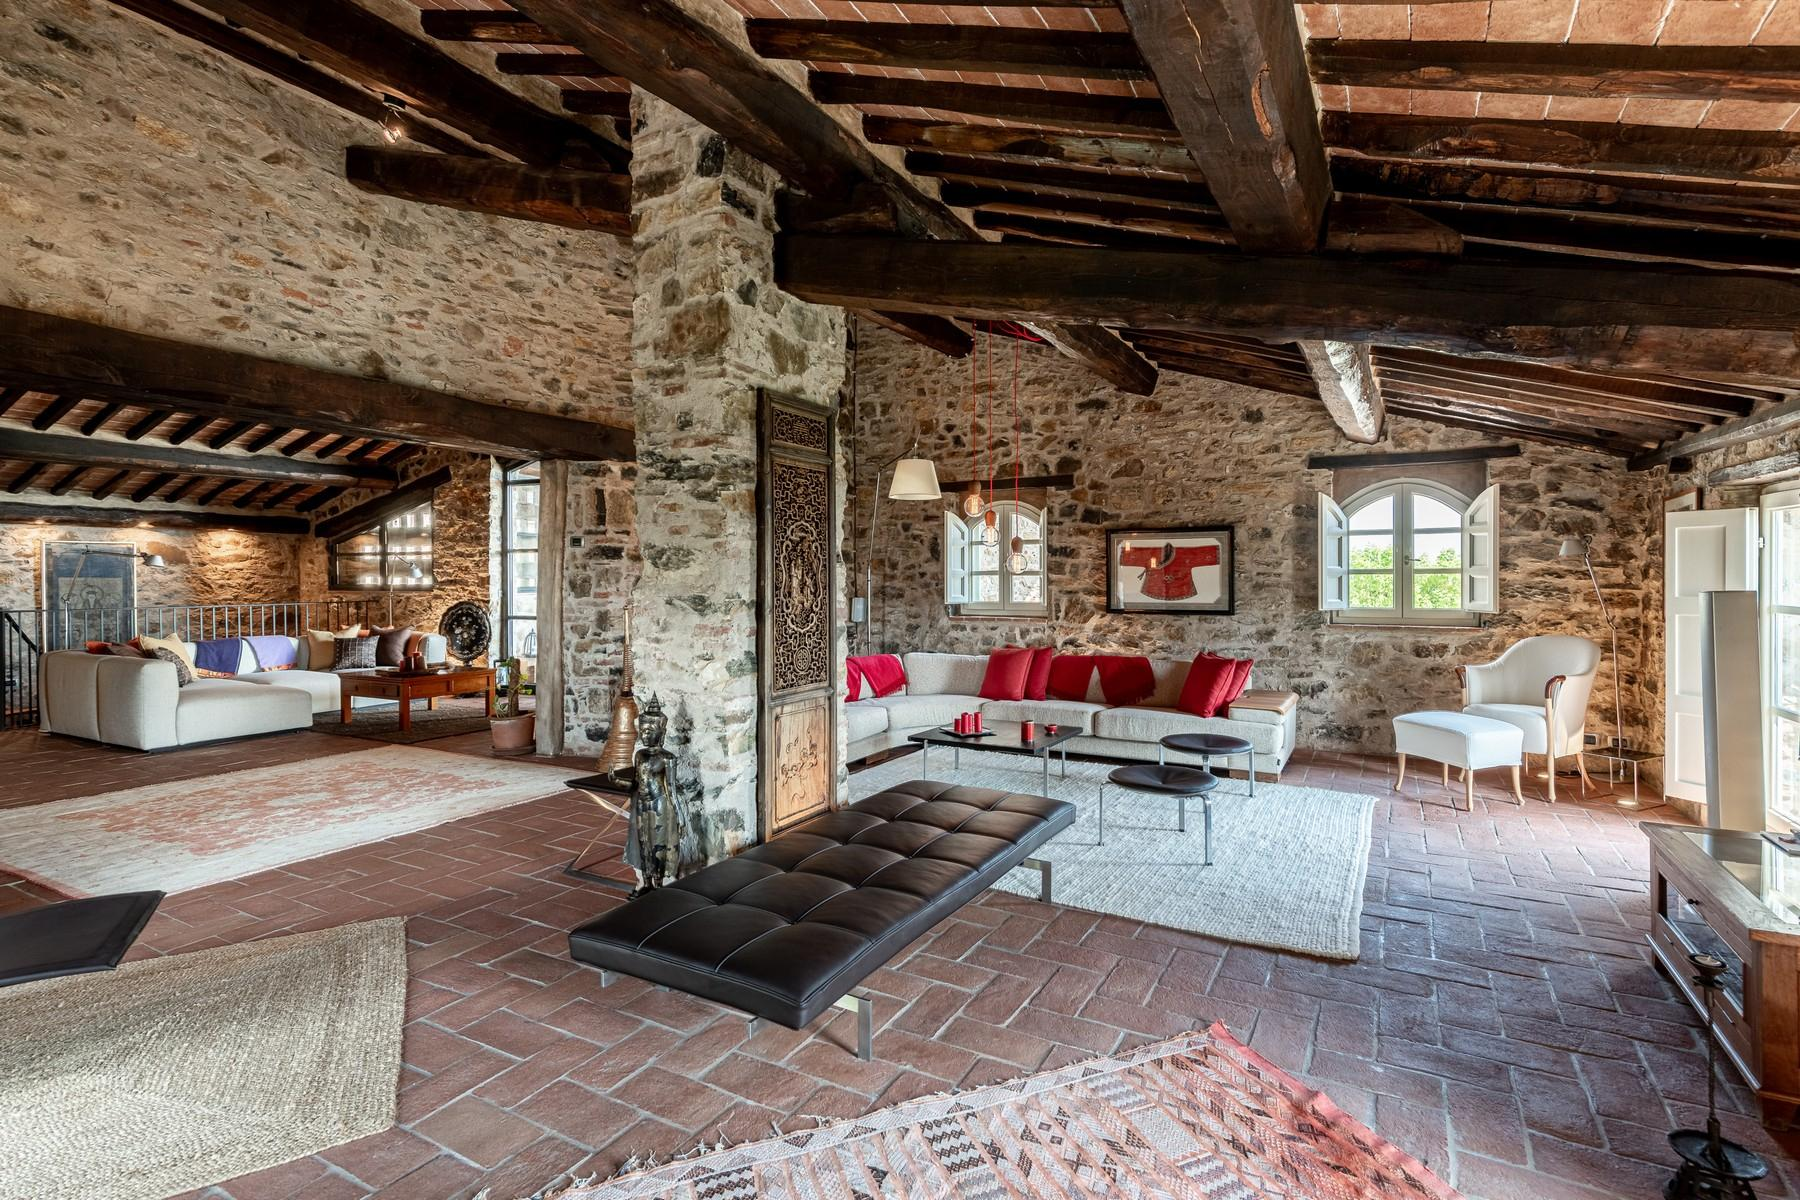 Magical farmhouse with stunning views on the hills of Lucca - 7